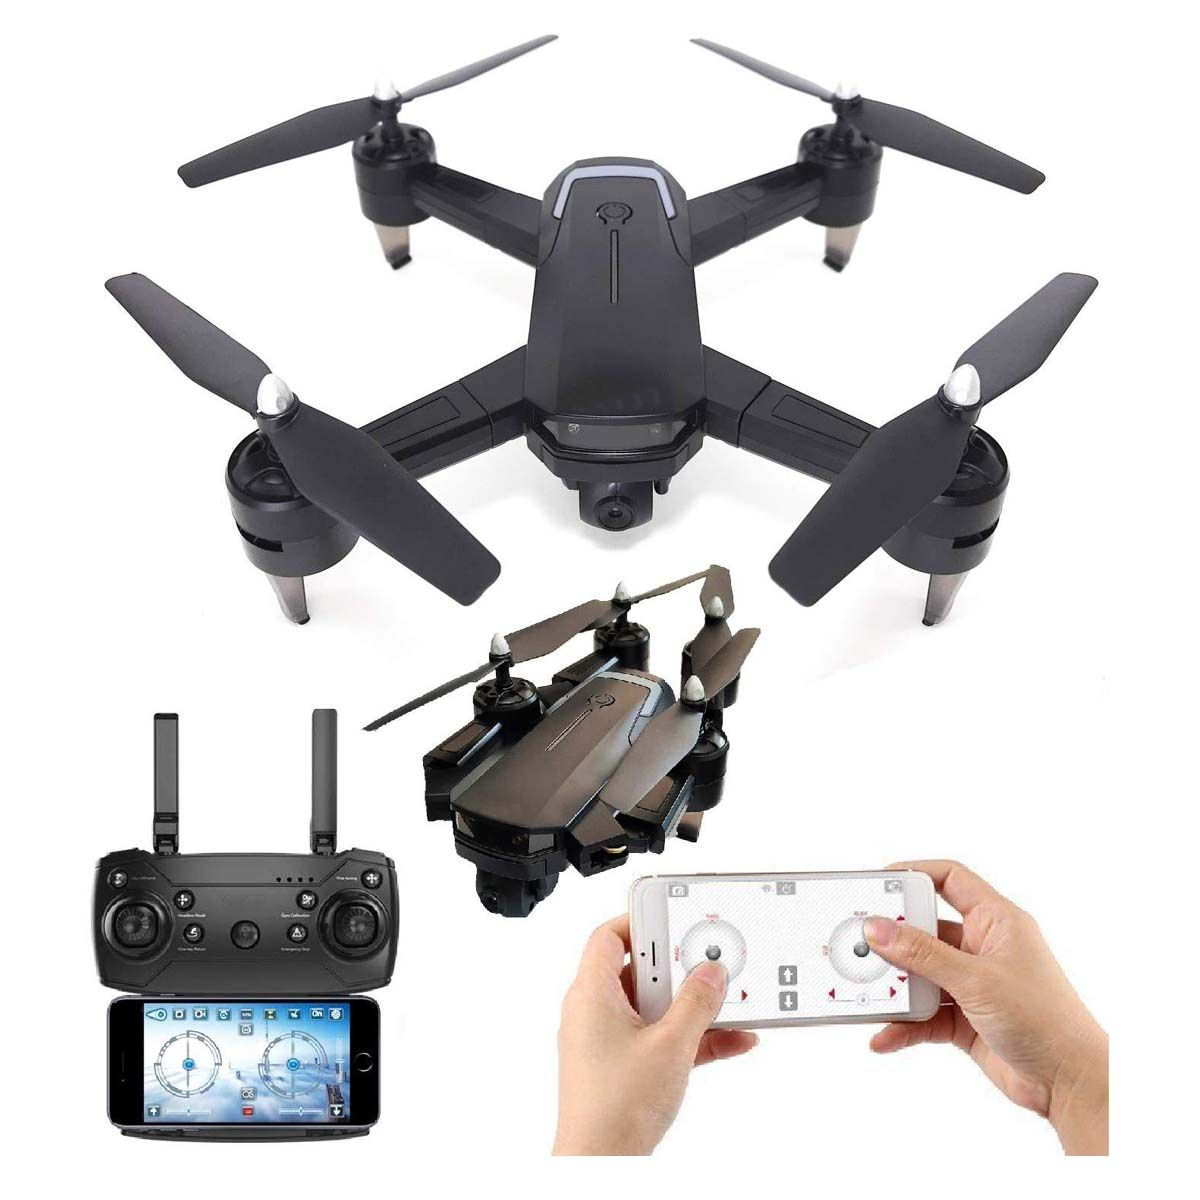 SUPER TOY Gesture Dual Camera Foldable Drone